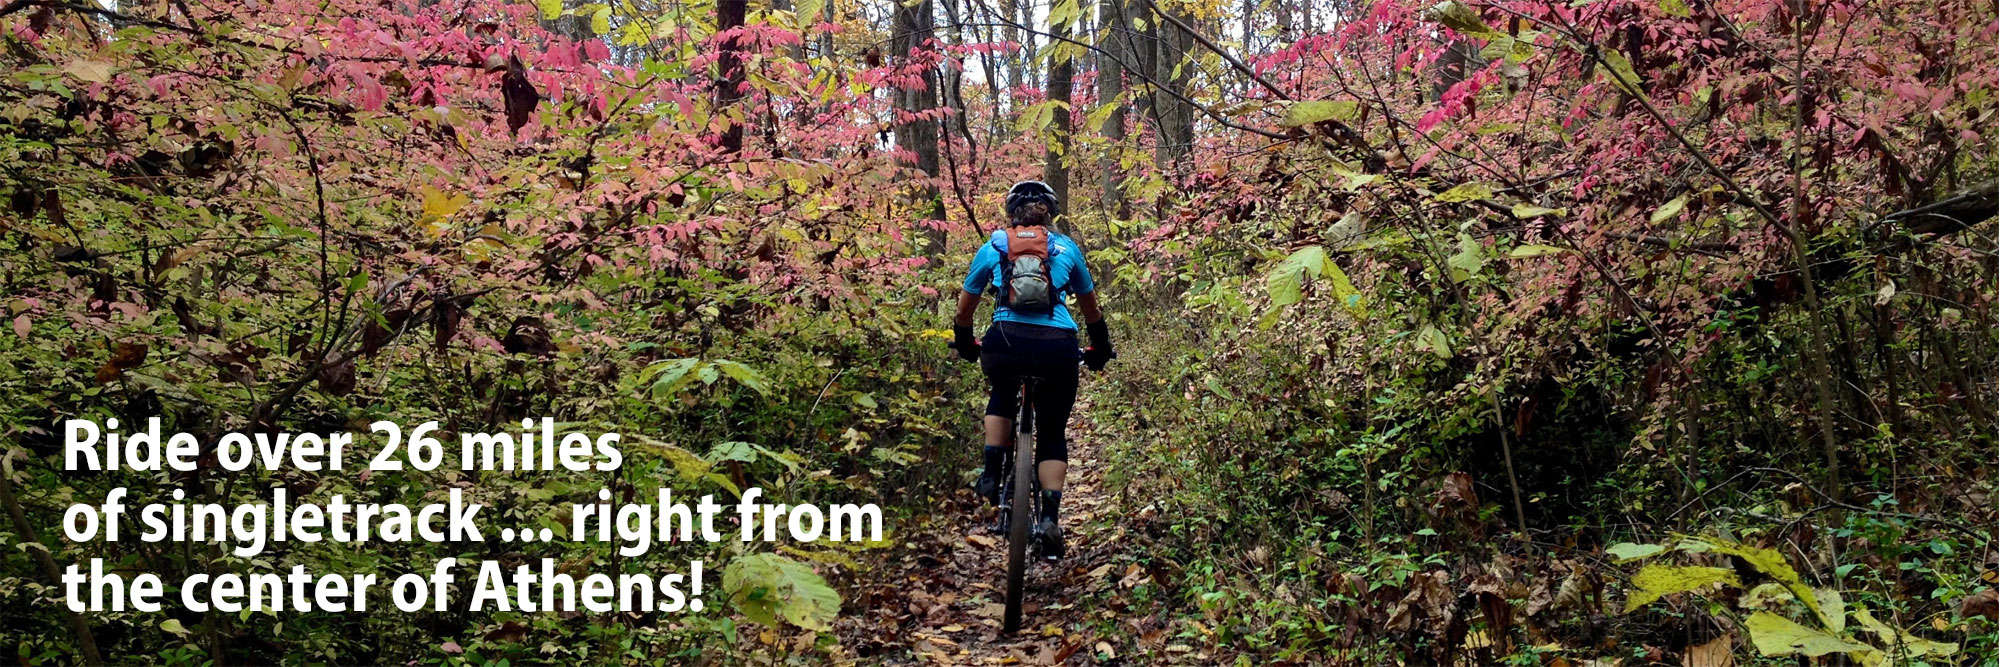 Mountain biking in Athens, Ohio